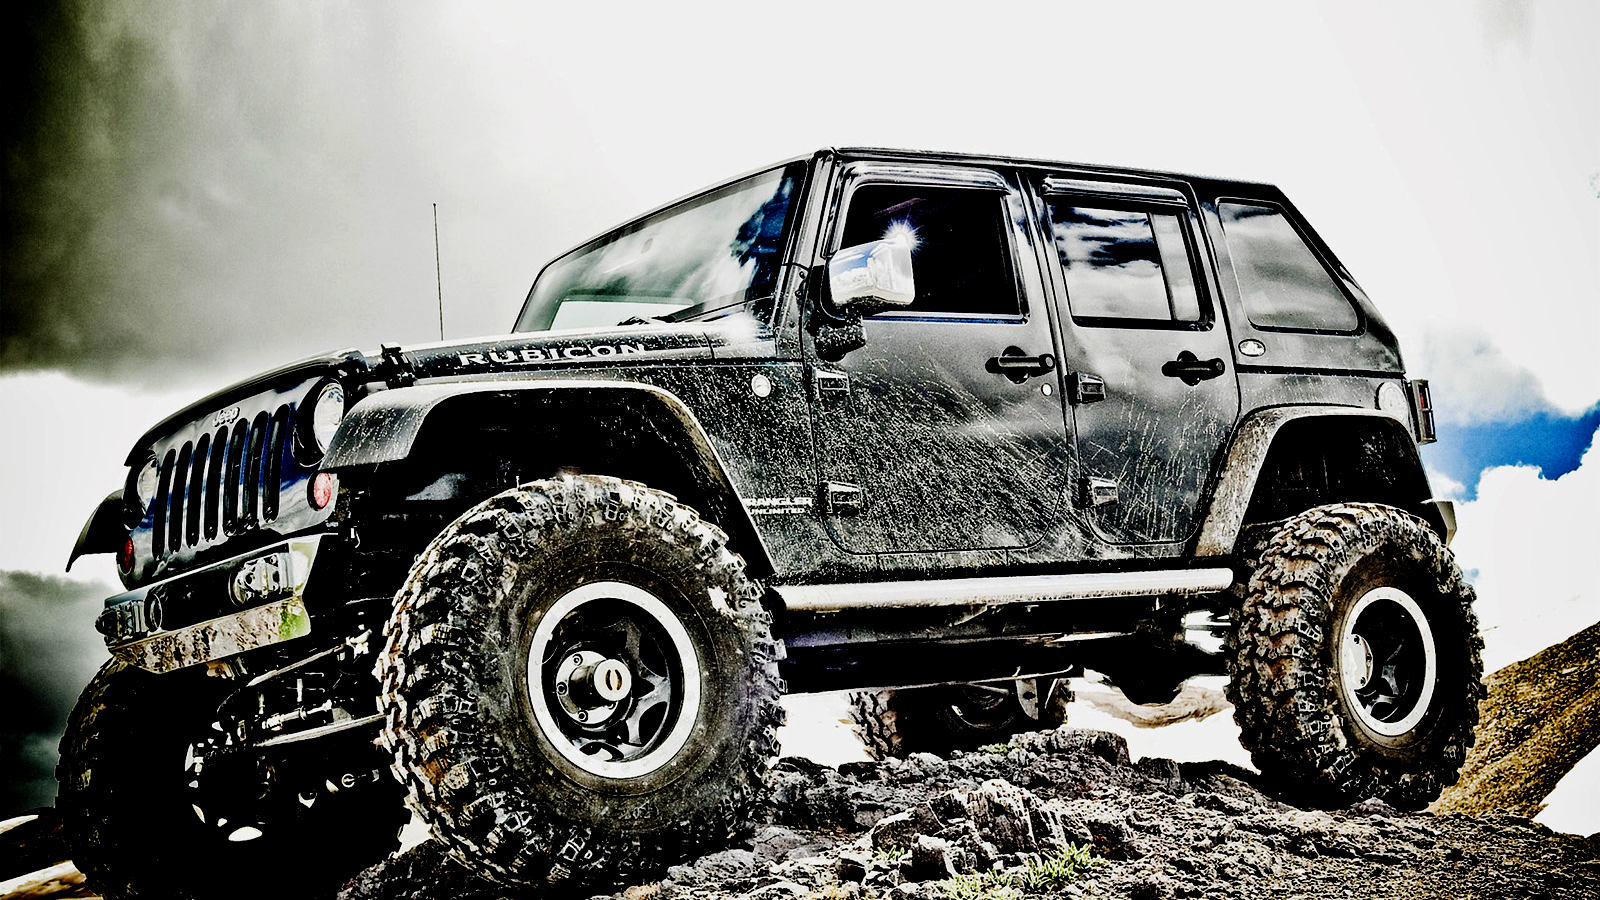 Cool Off Road Wallpaper